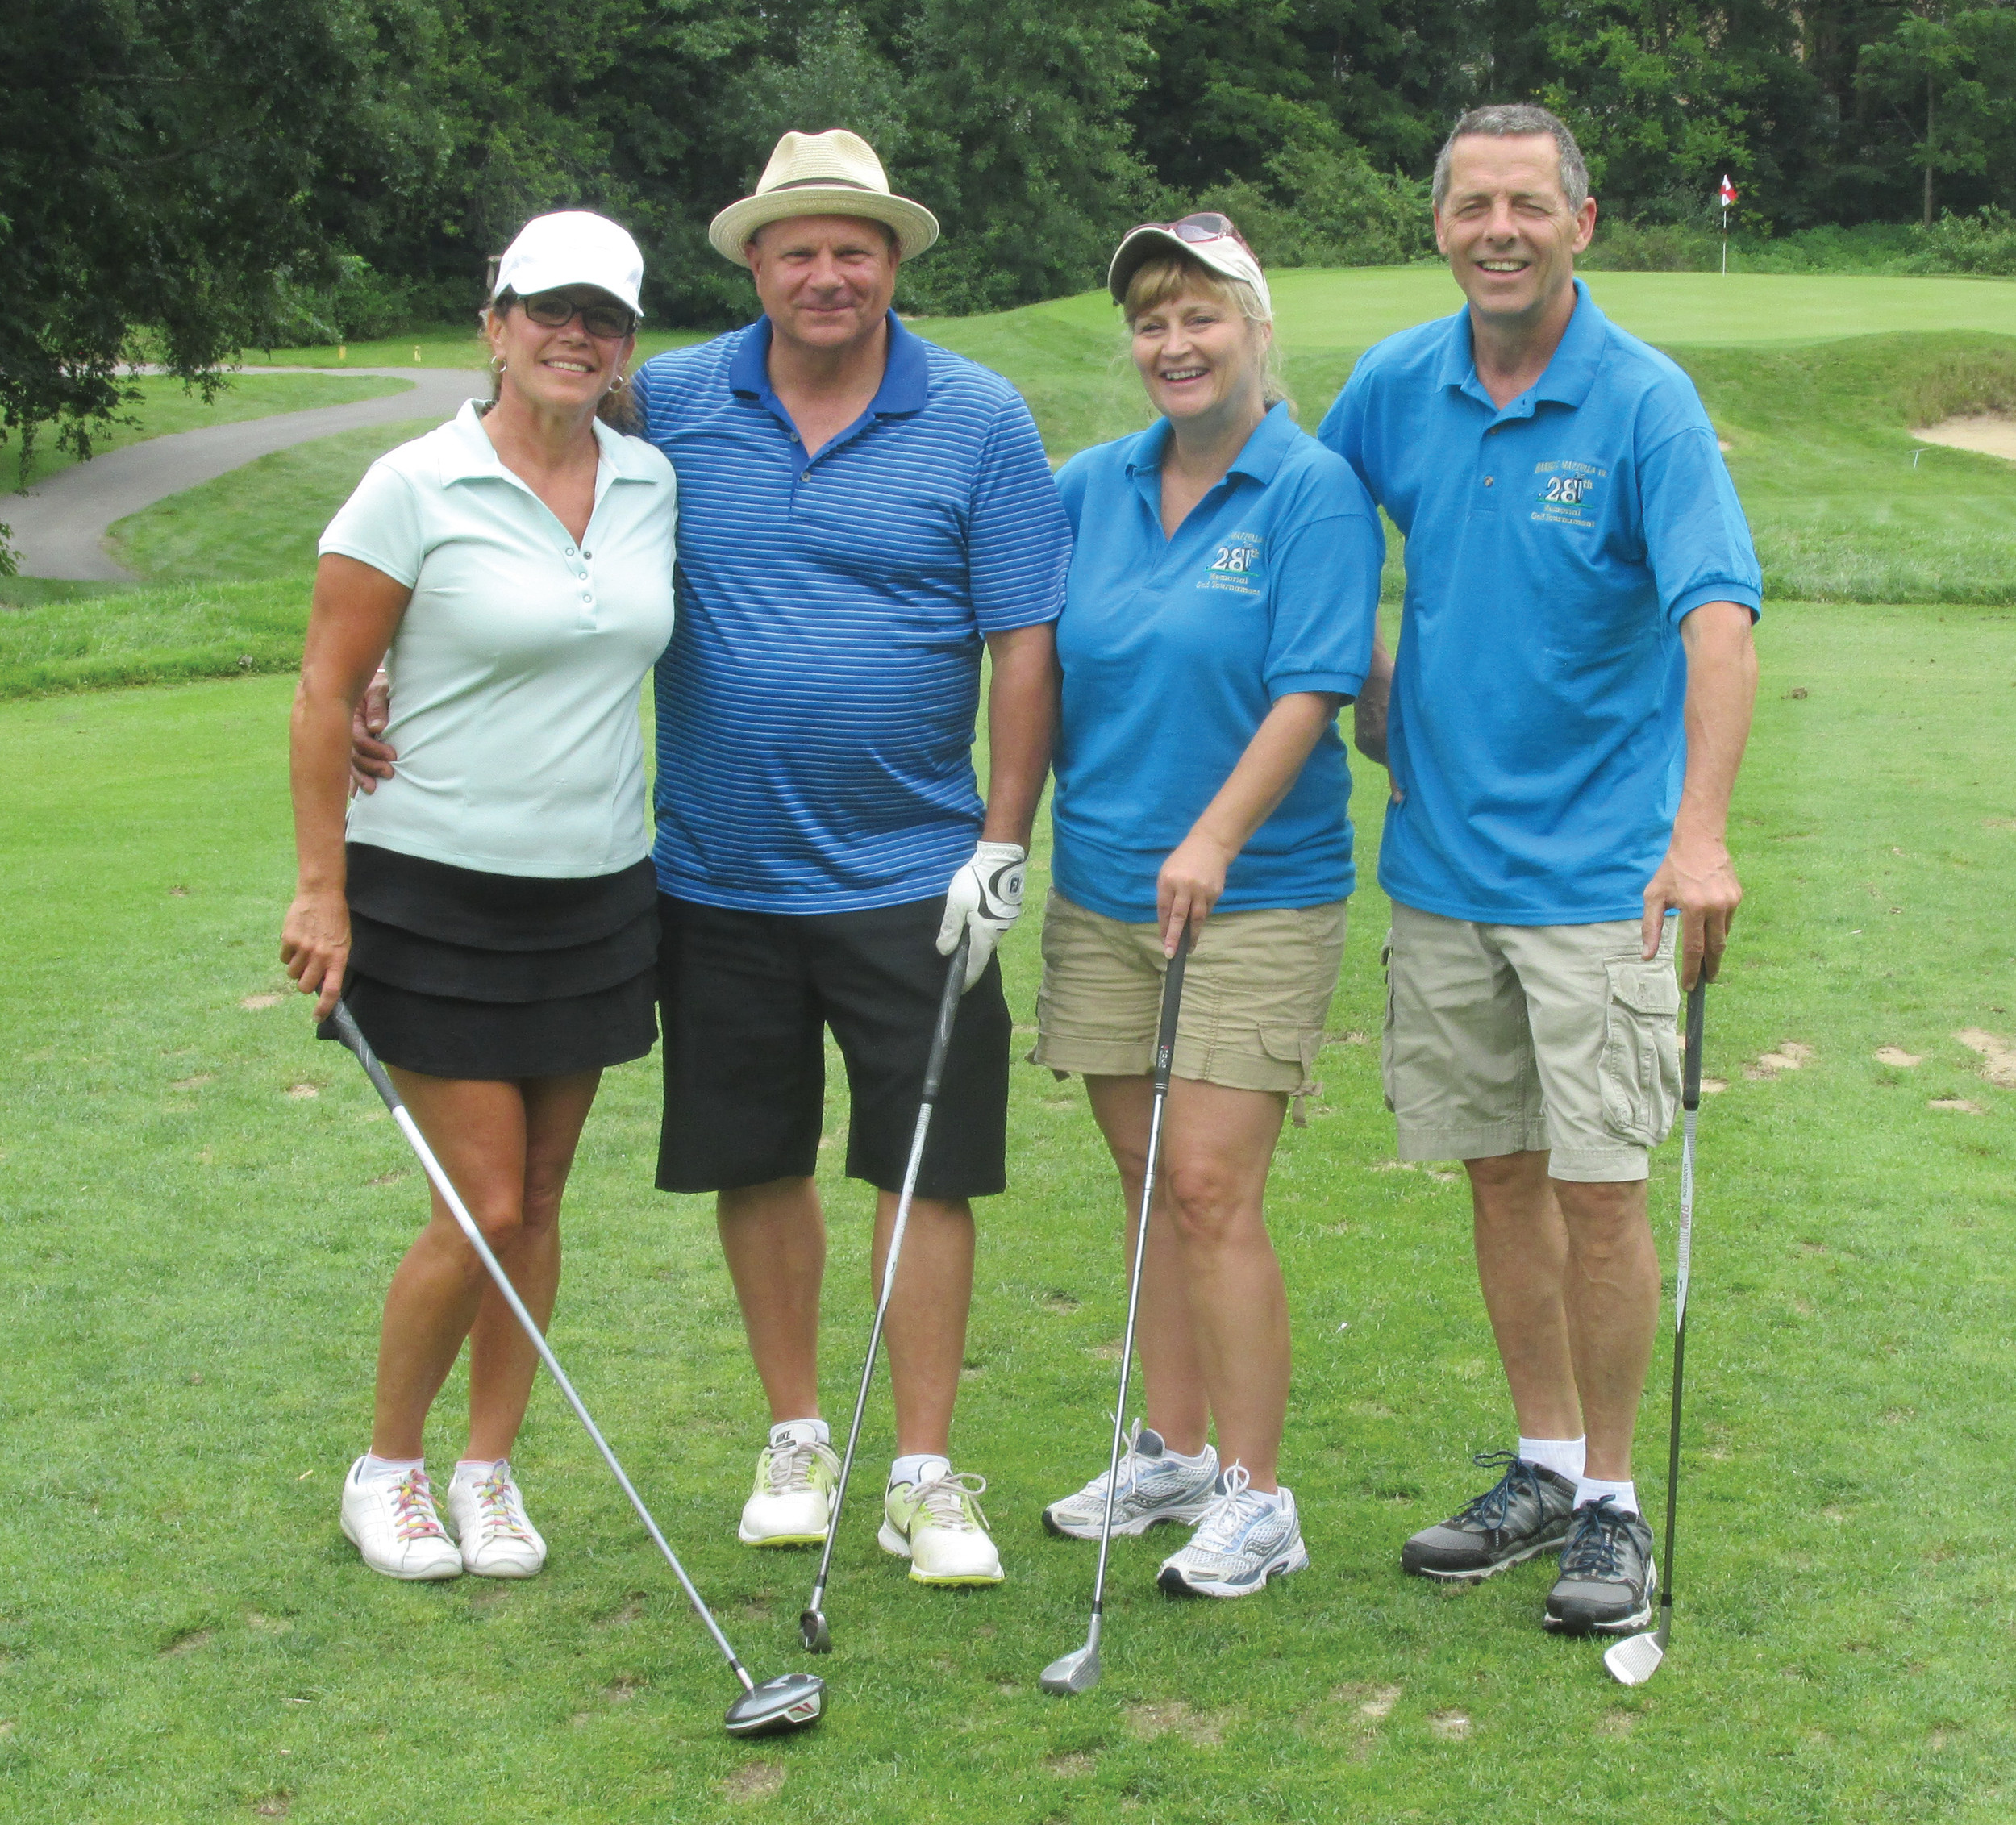 MIKE'S MATES: Mike Mazzulla (right) is joined by Lisa DeChristofaro, Paul Cerulo and Robin Christensen at Triggs Memorial Golf Course in Providence, where the 30th annual Daniel E. Mazzulla Sr. Golf Tournament was recently played.